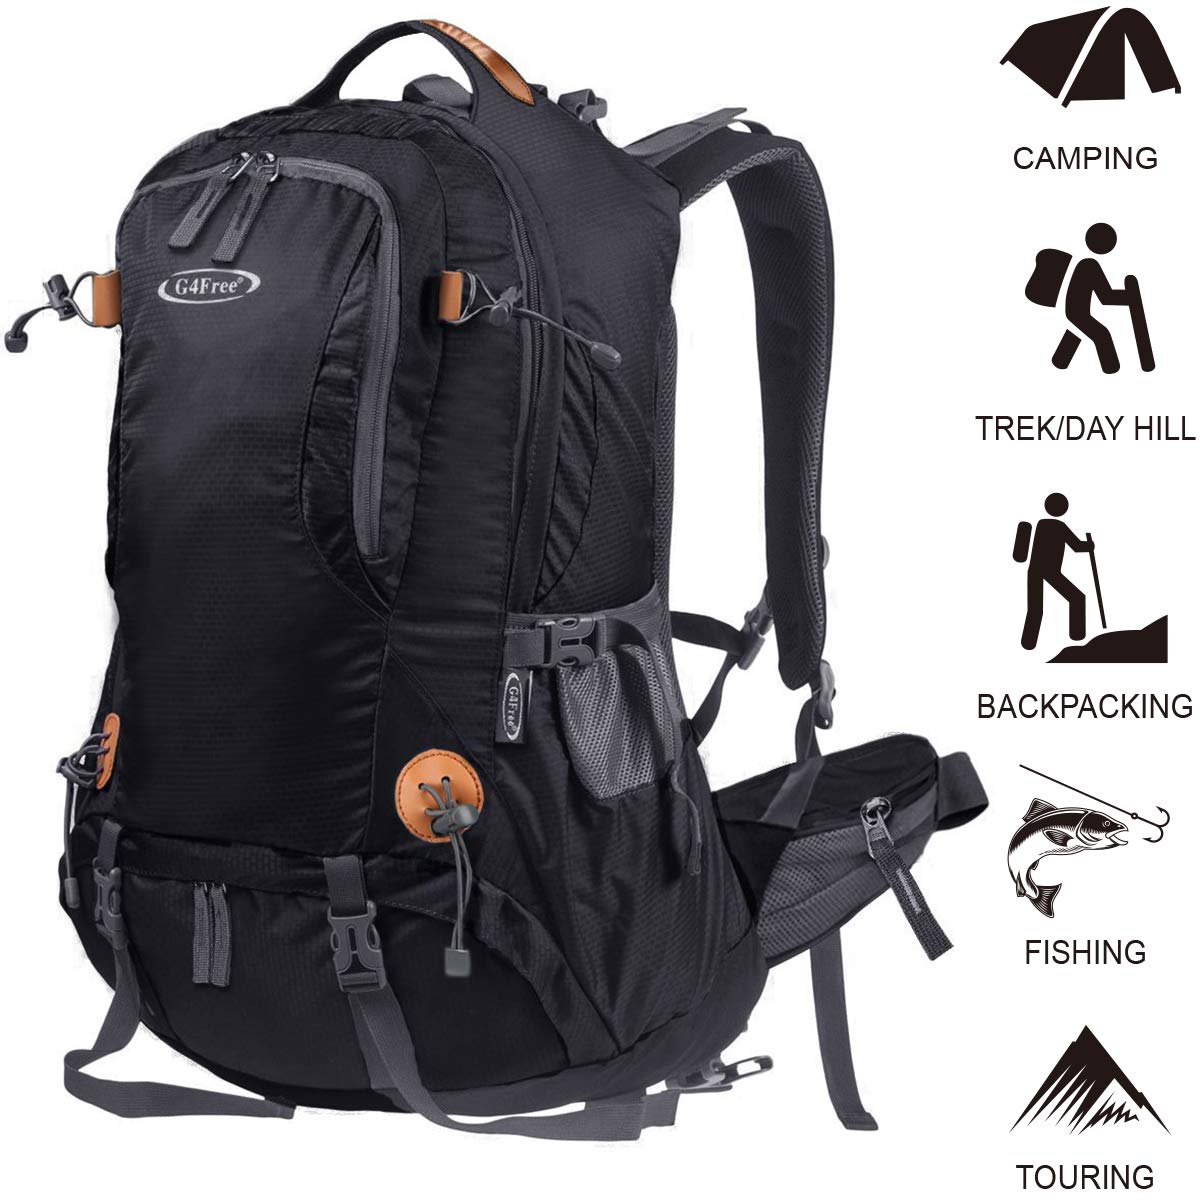 G4Free Hiking Backpack 50L Outdoor Camping Climbing Backpack Waterproof Daypack for men women with Rain Cover Black by G4Free